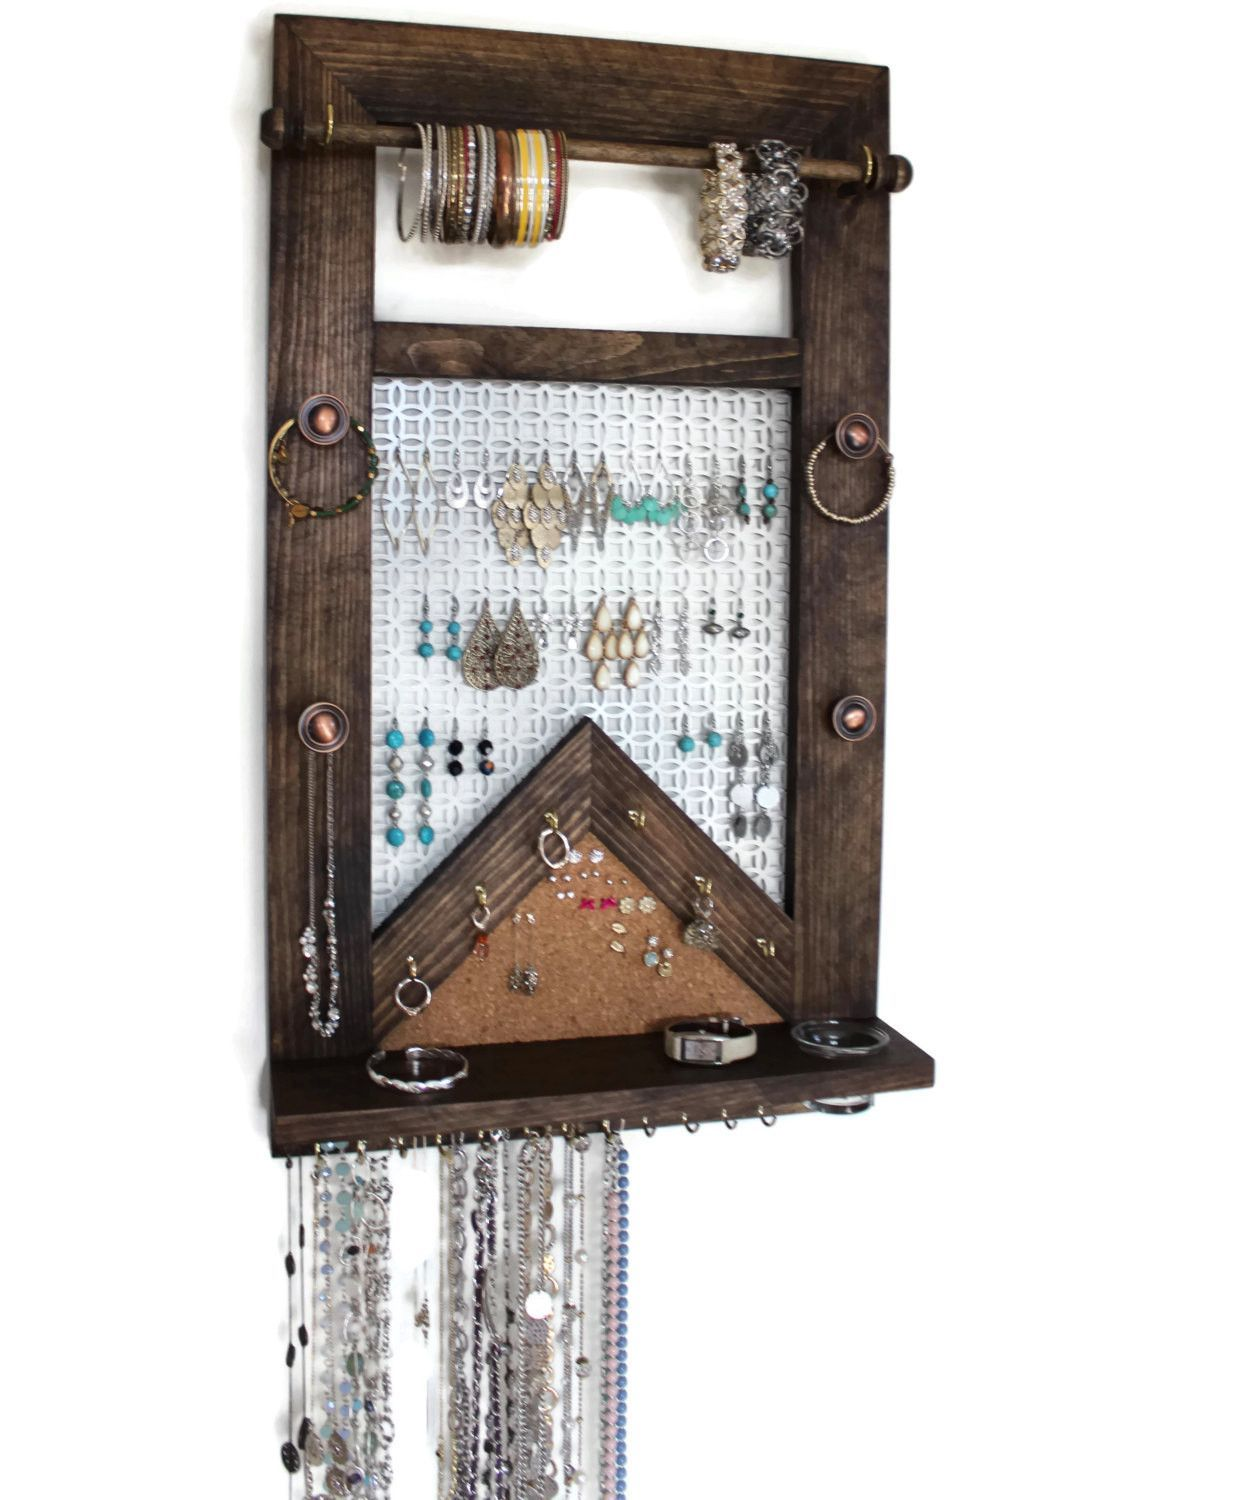 All-in-One Jewelry Organizer Wooden Wall by TheWoodenCorner |Wooden Wall Jewelry Organizer